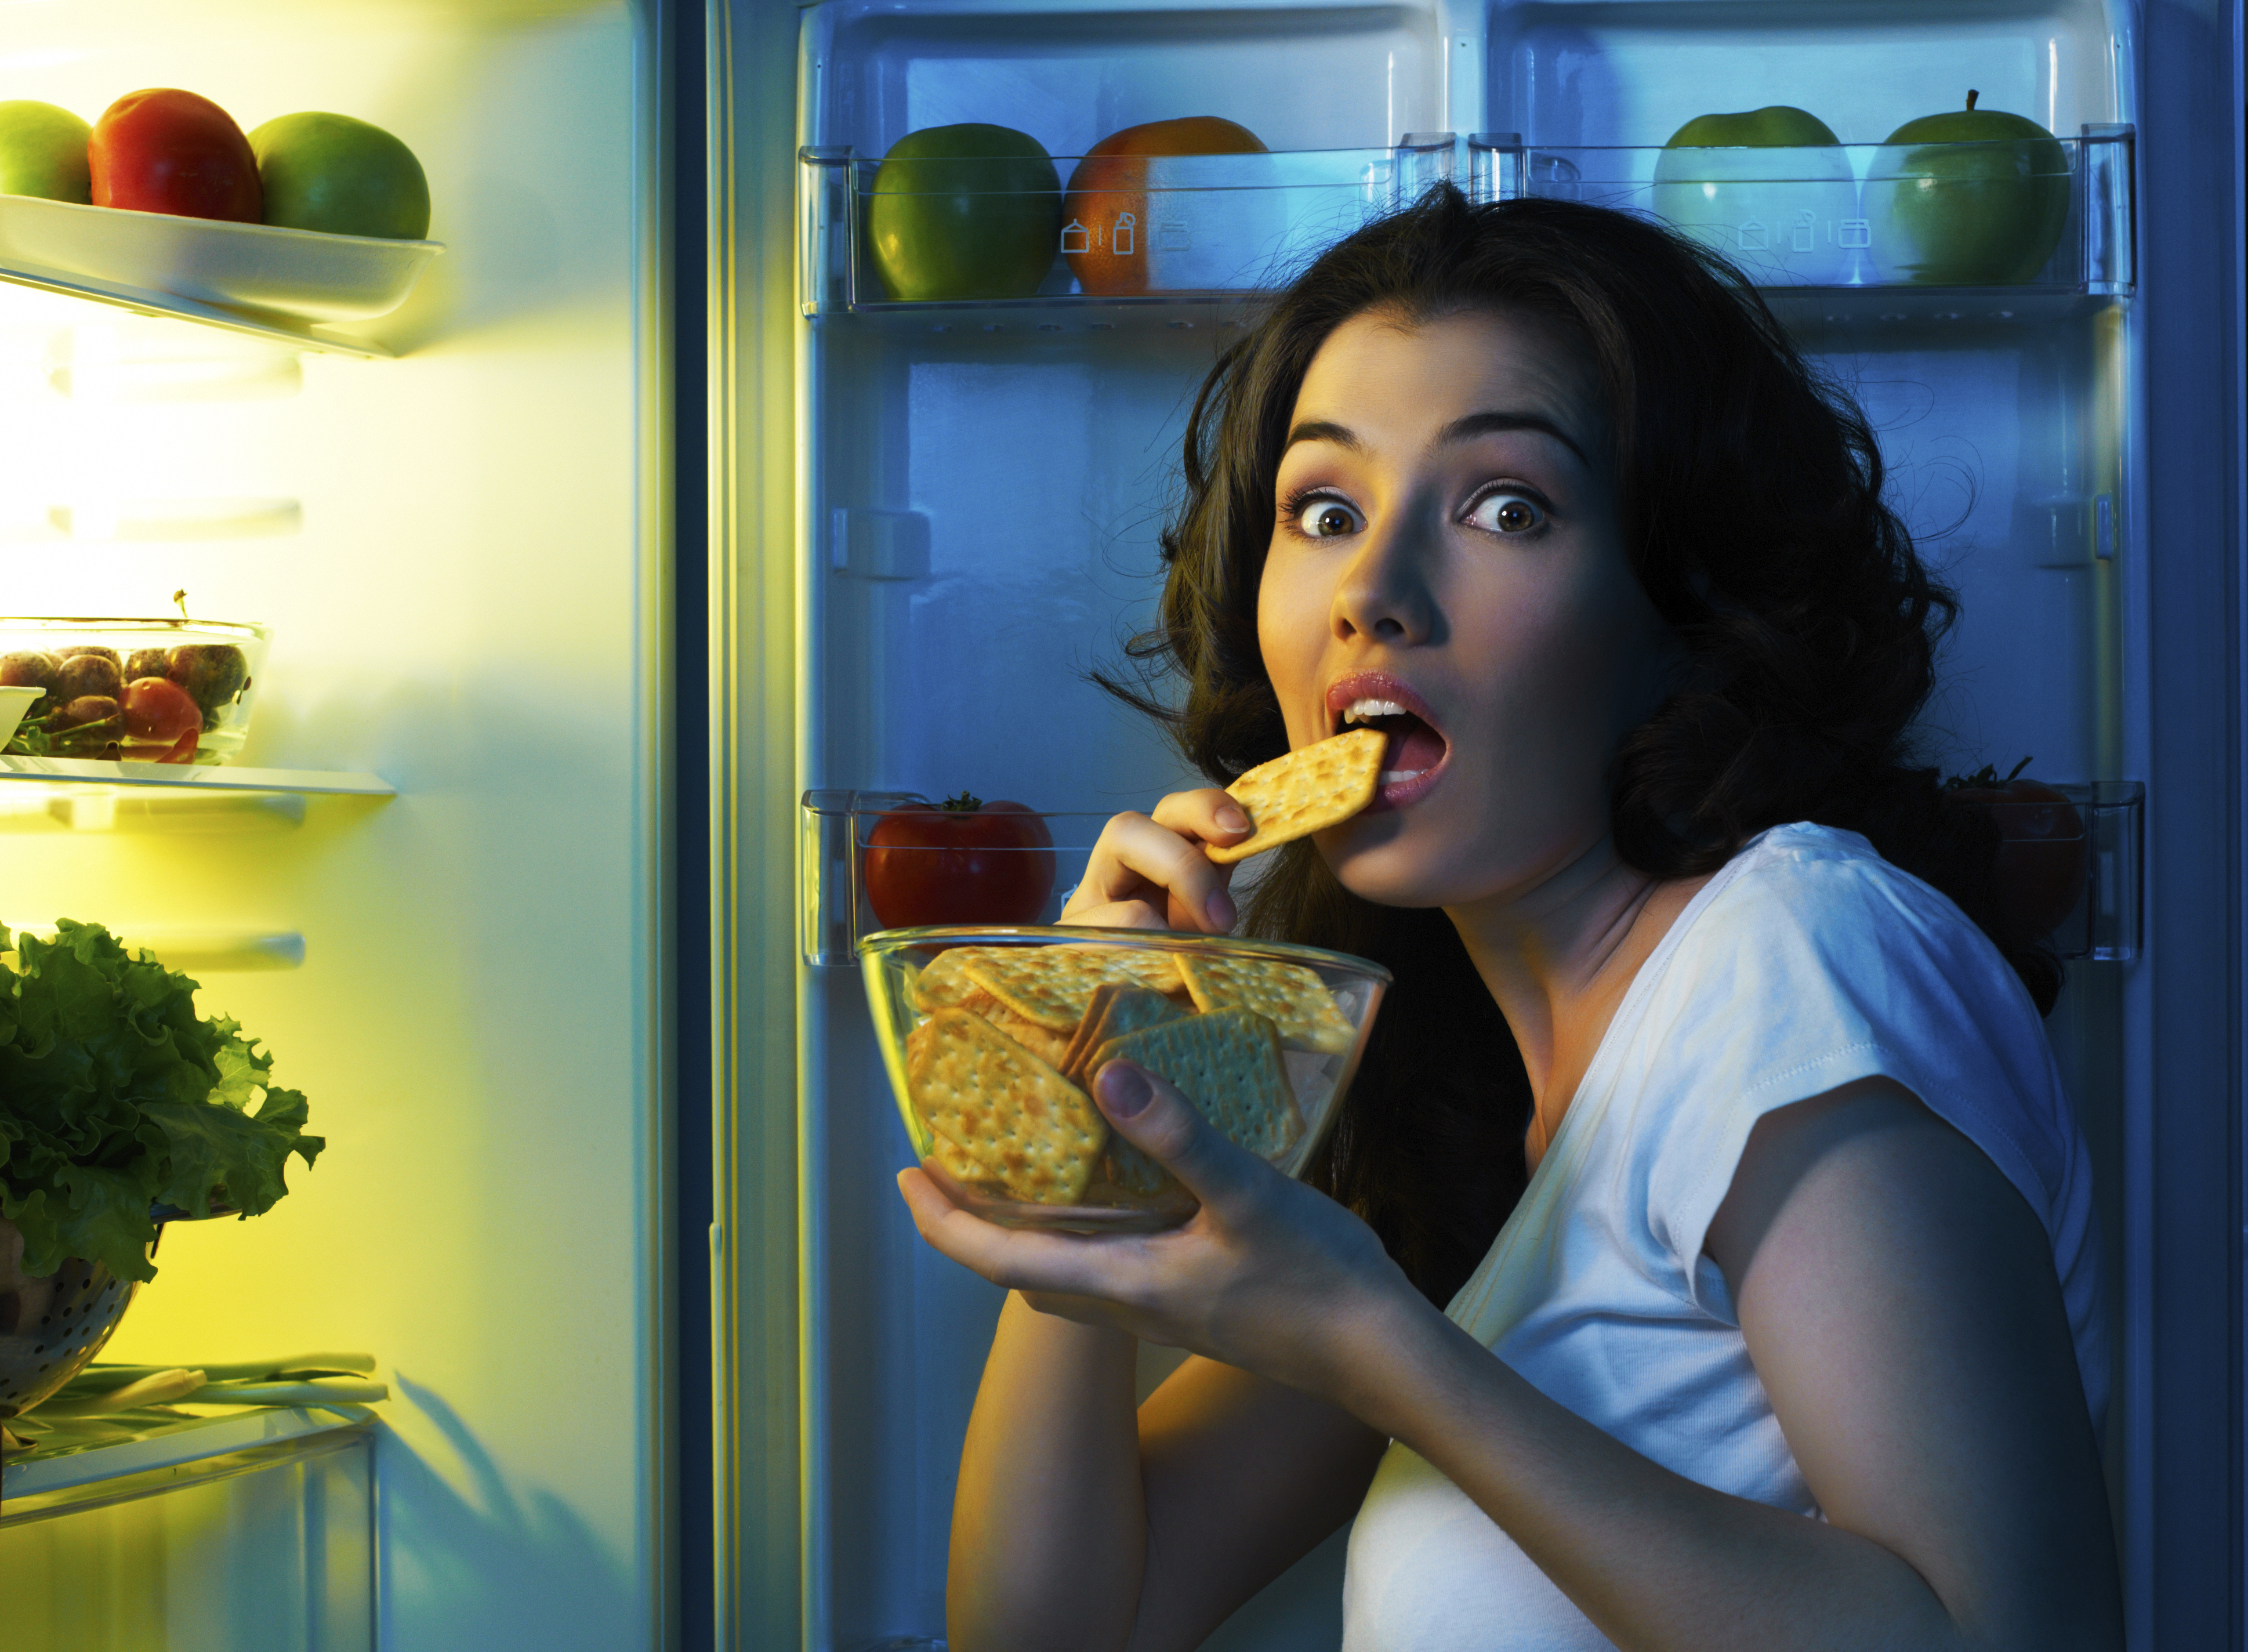 Should I avoid eating in the middle of the night, and also ...